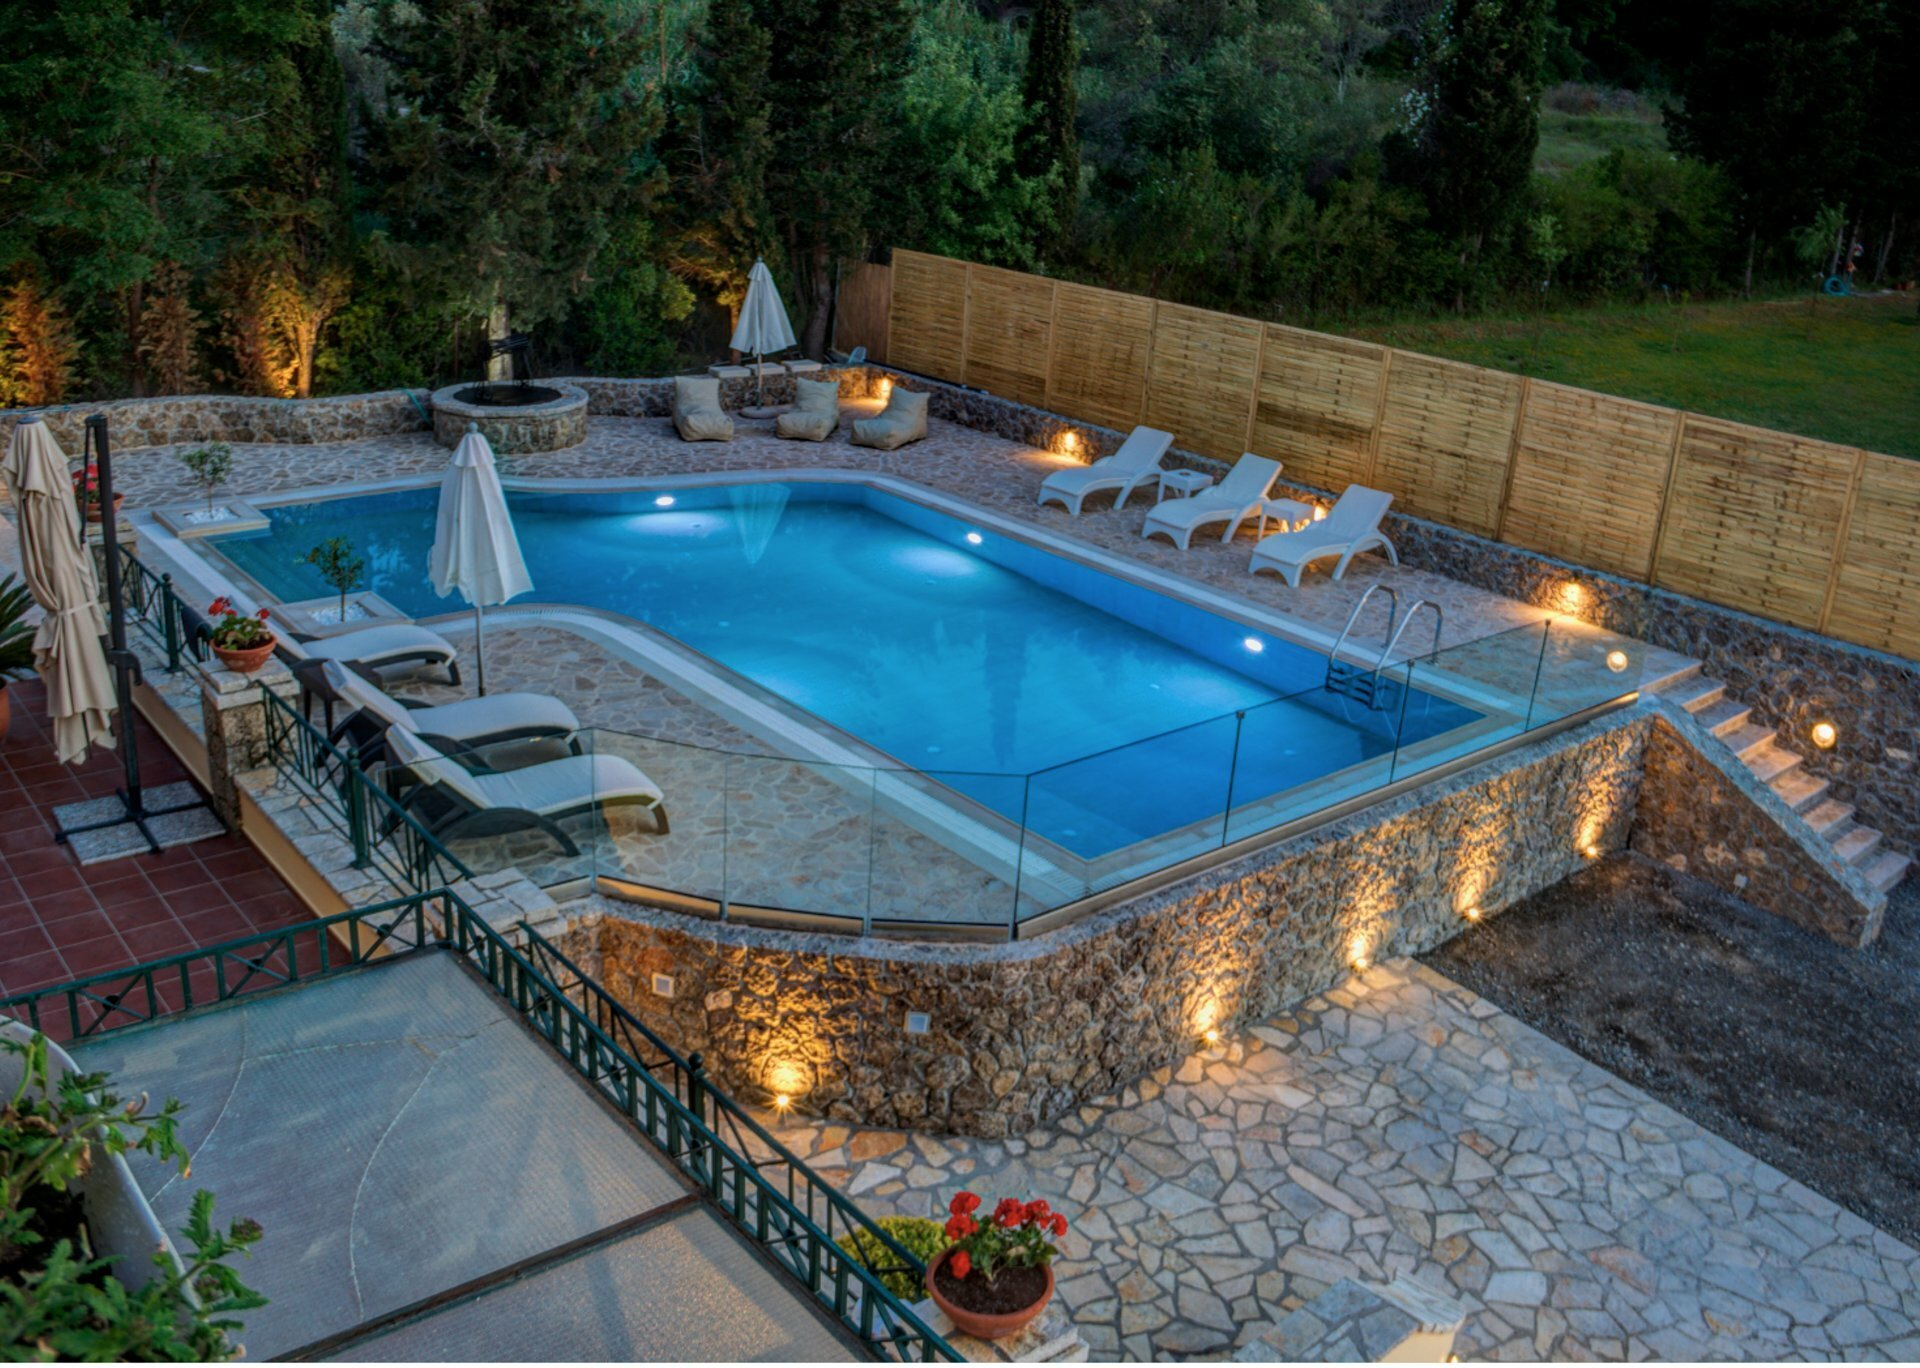 Villa in Corfu, Decentralized Administration of Peloponnese, Western Greece and the Ionian, Greece 1